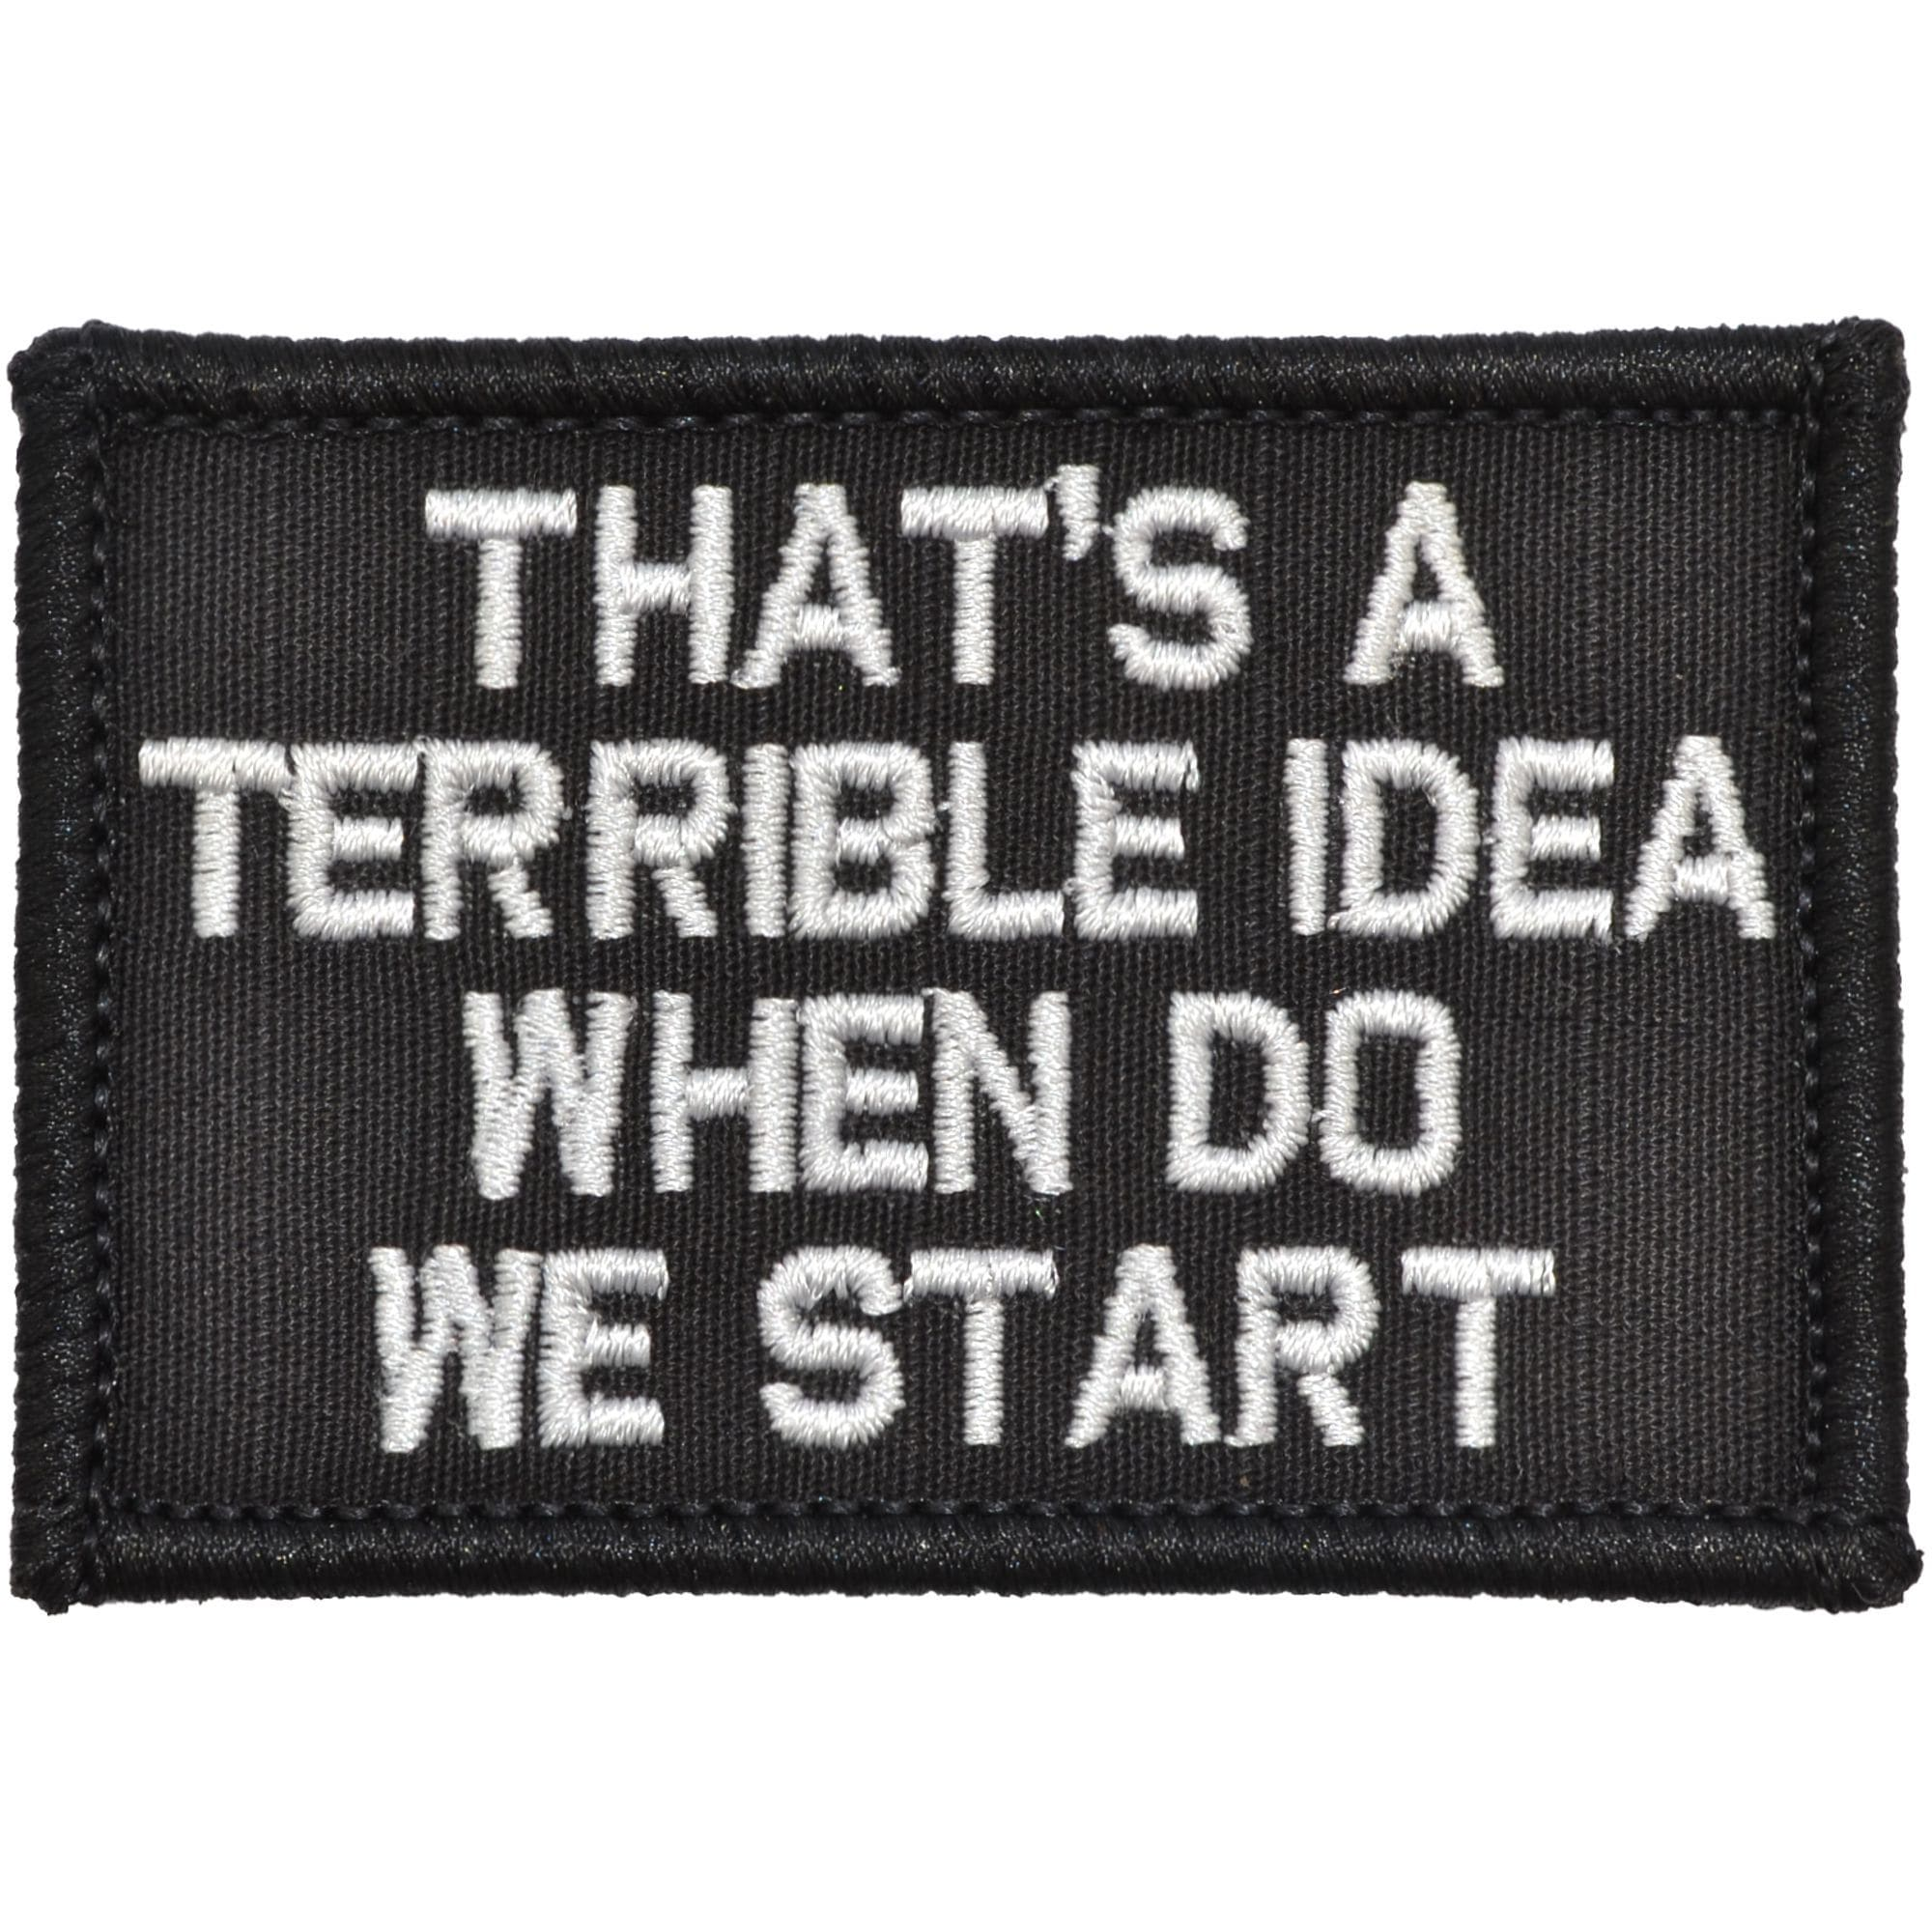 Tactical Gear Junkie Patches Black That's a Terrible Idea When Do We Start - 2x3 Patch